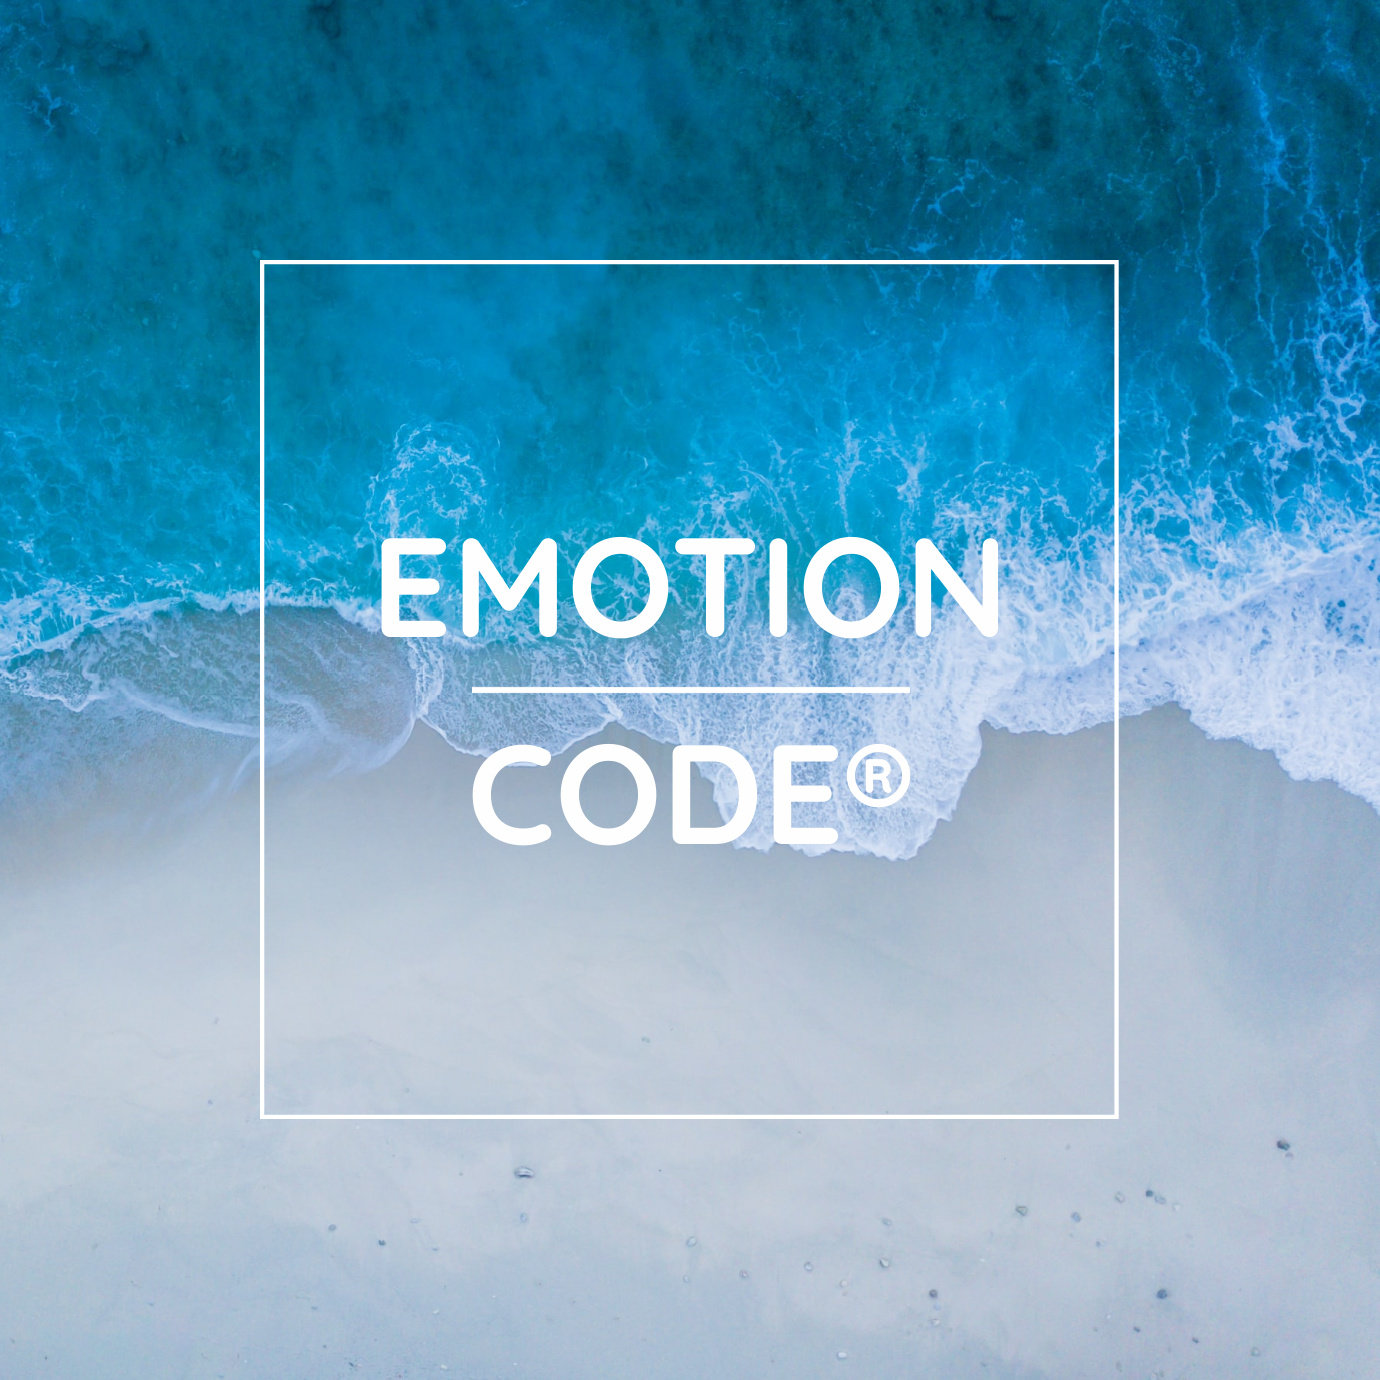 The Emotion Code®